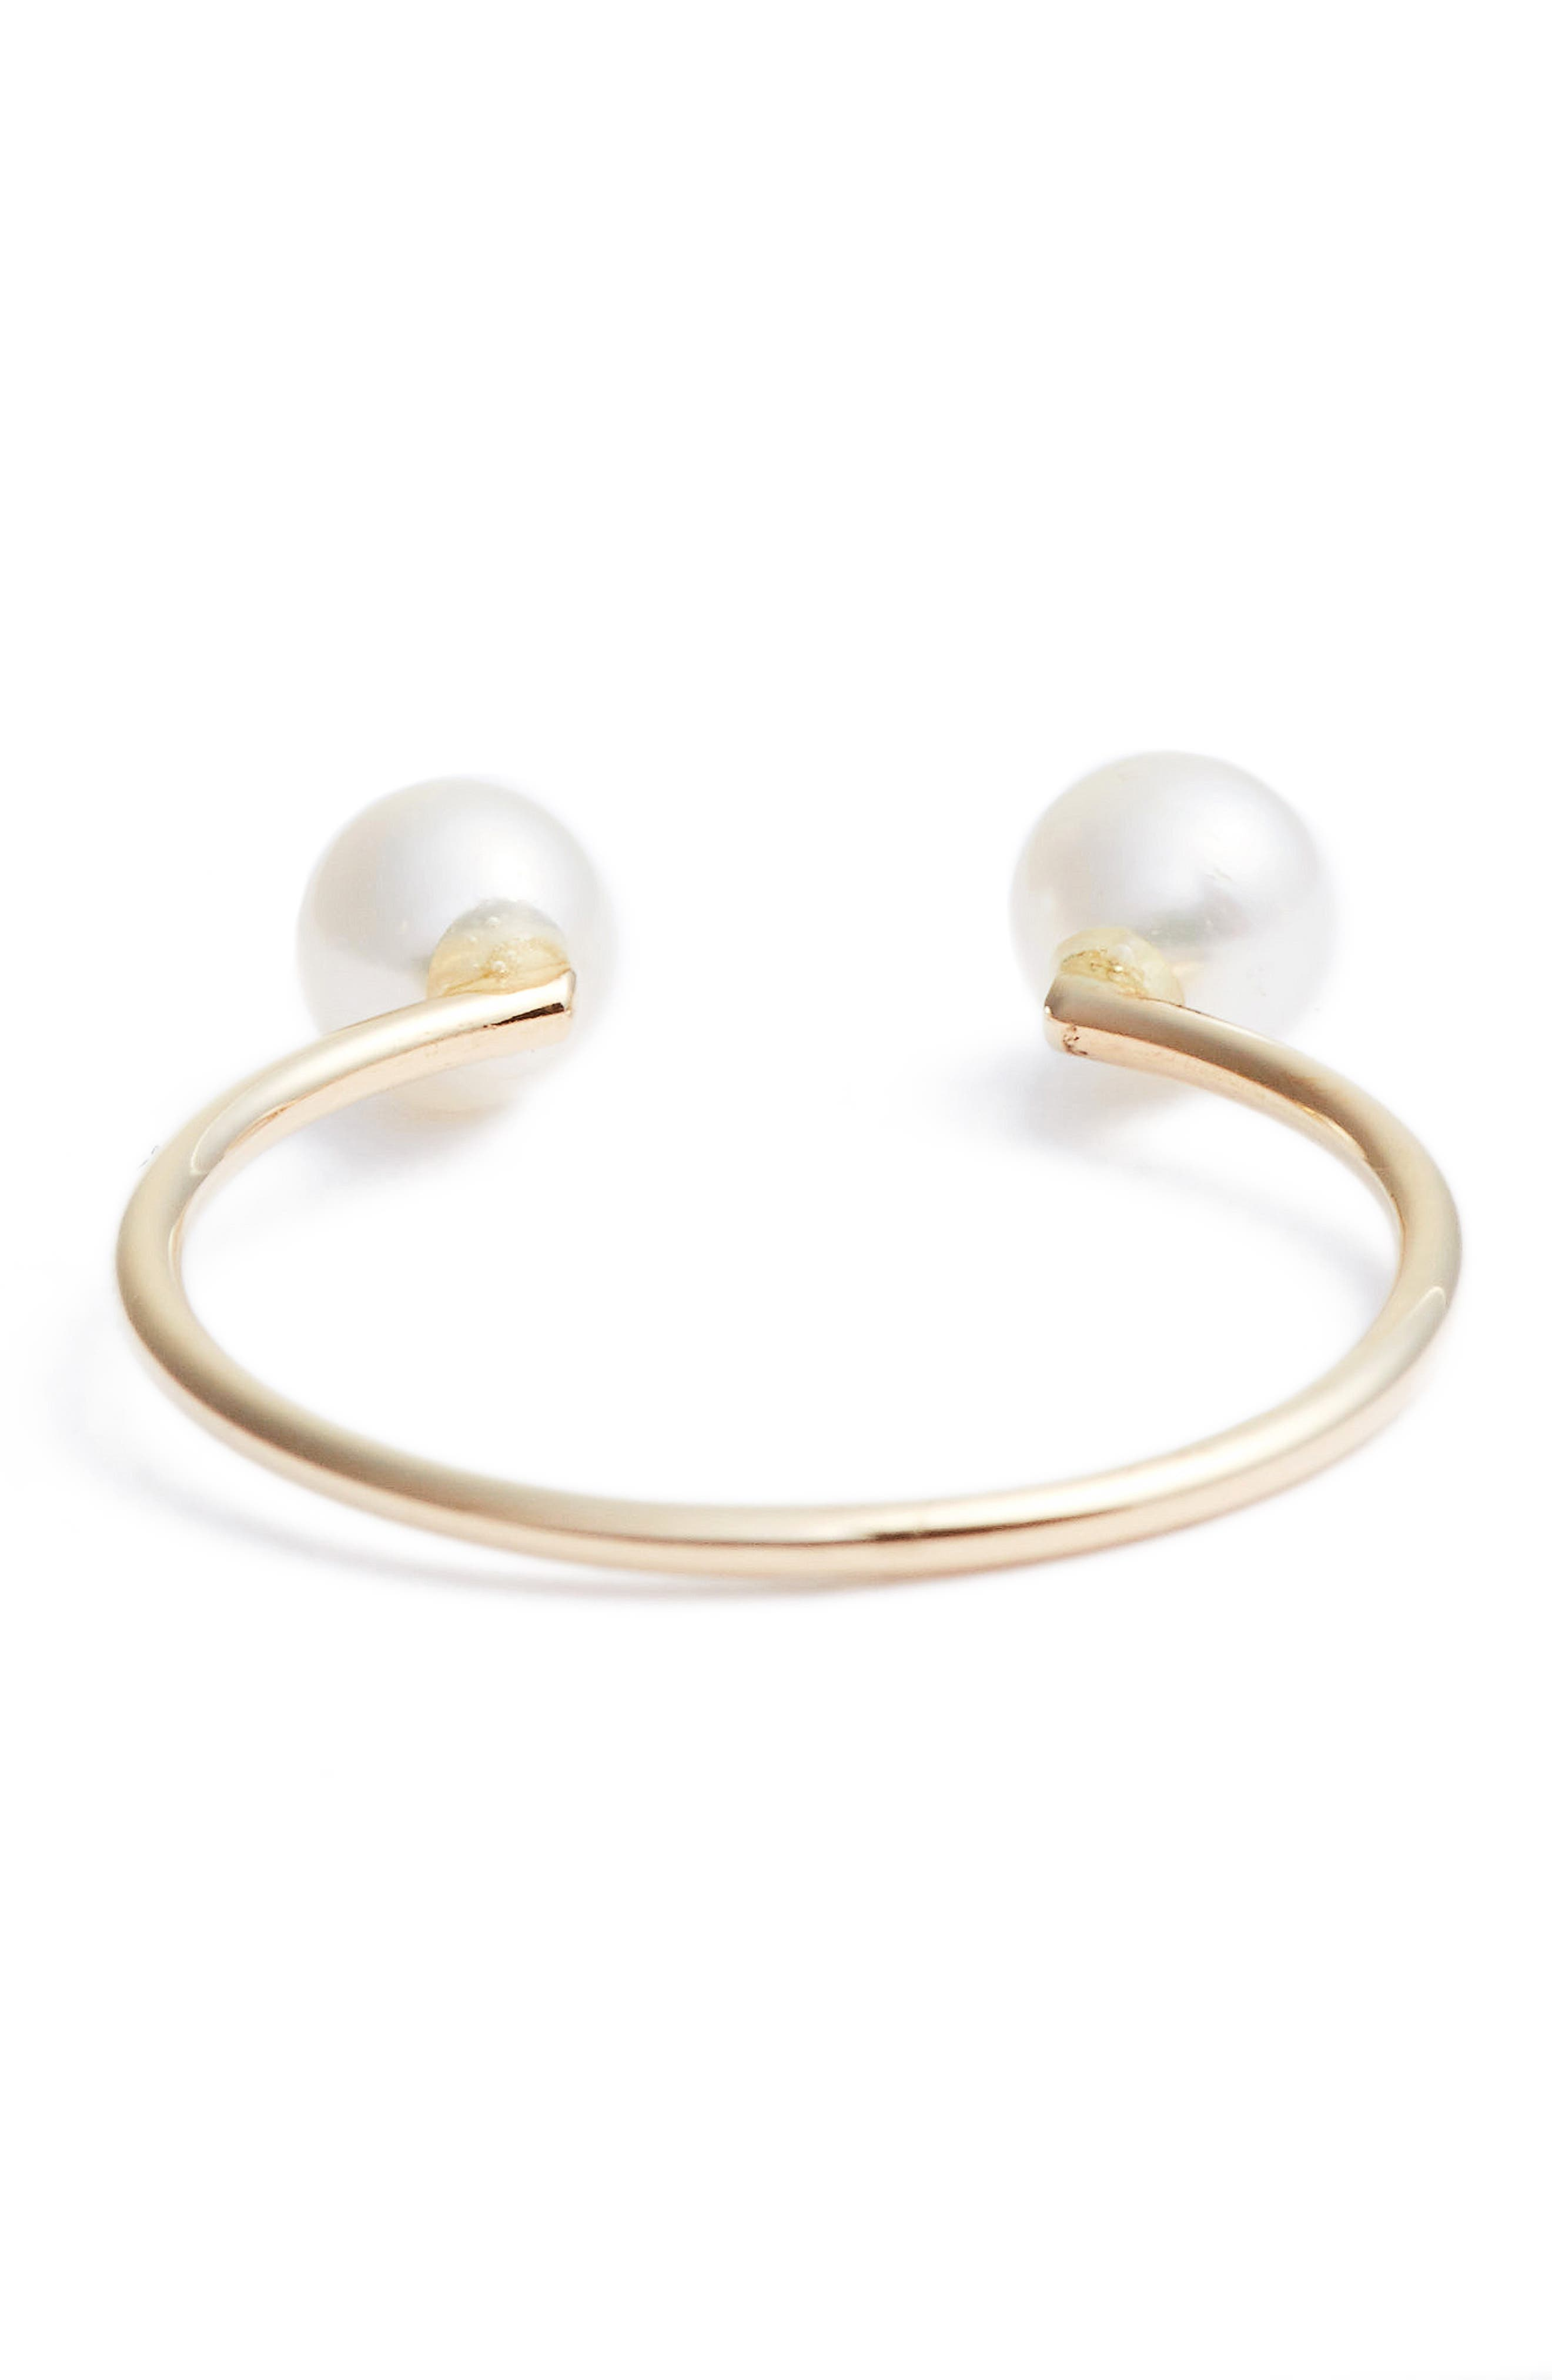 Skinny Pearl Open Ring,                             Alternate thumbnail 3, color,                             YELLOW GOLD/ WHITE PEARL